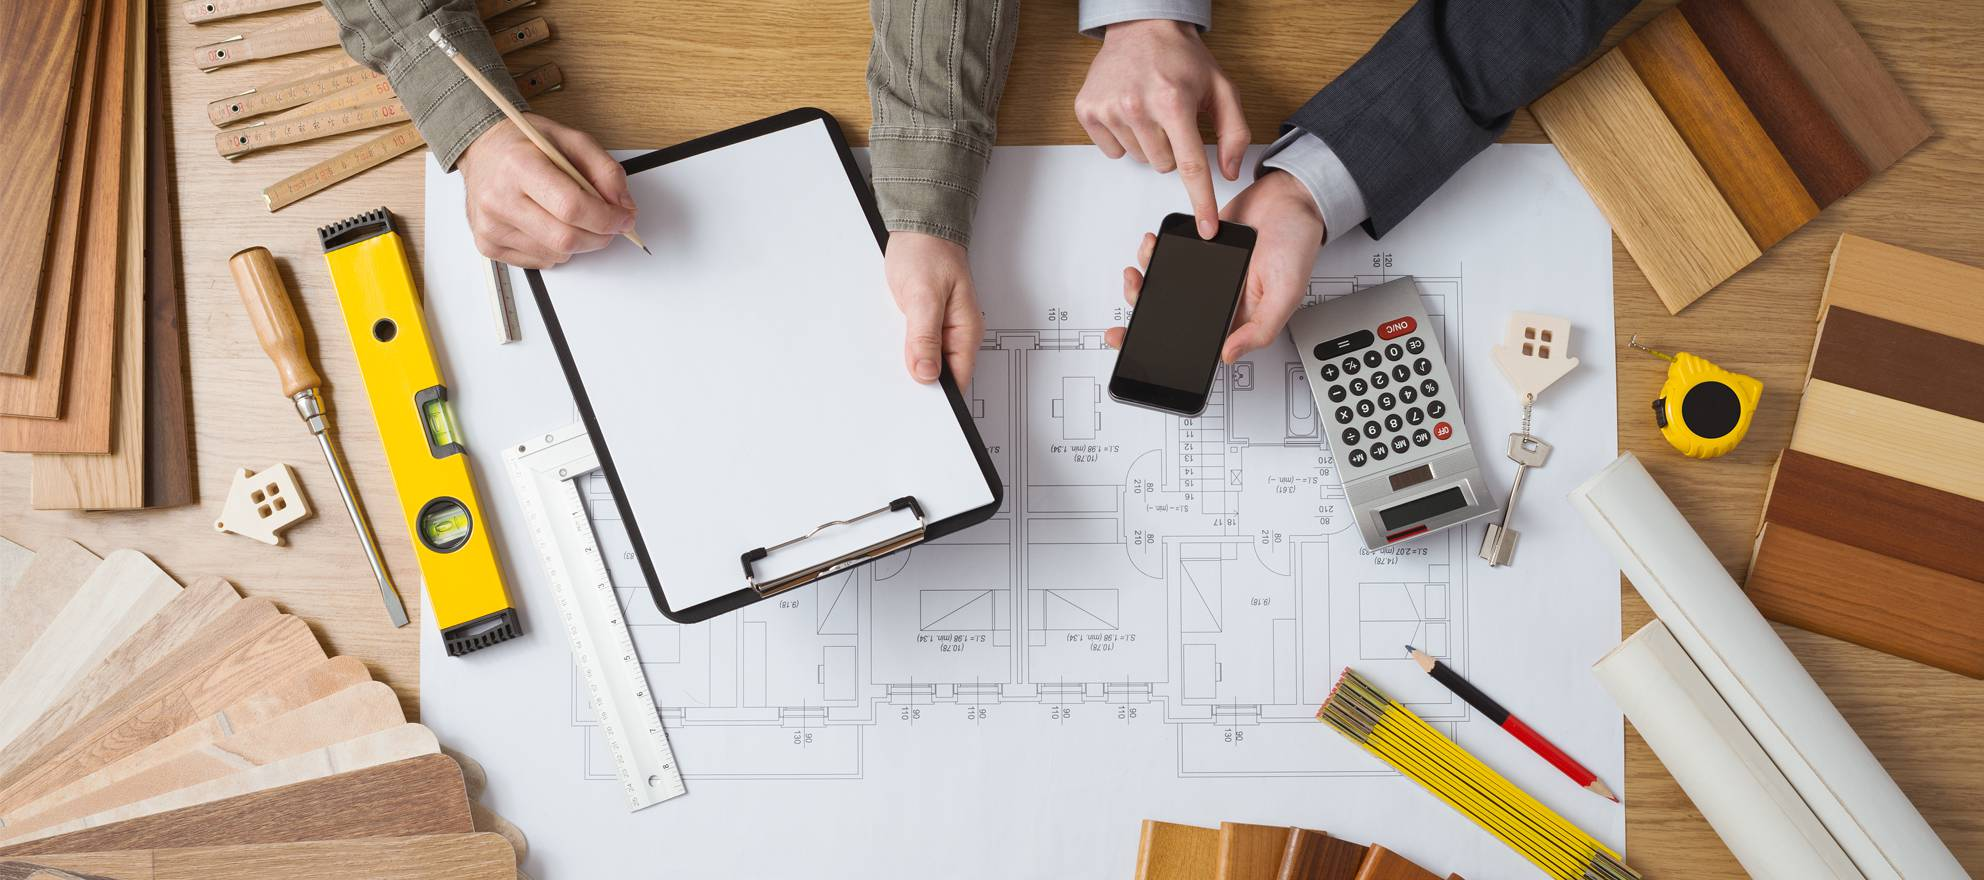 What Home Remodeling Projects Have The Best ROI - Home remodeling